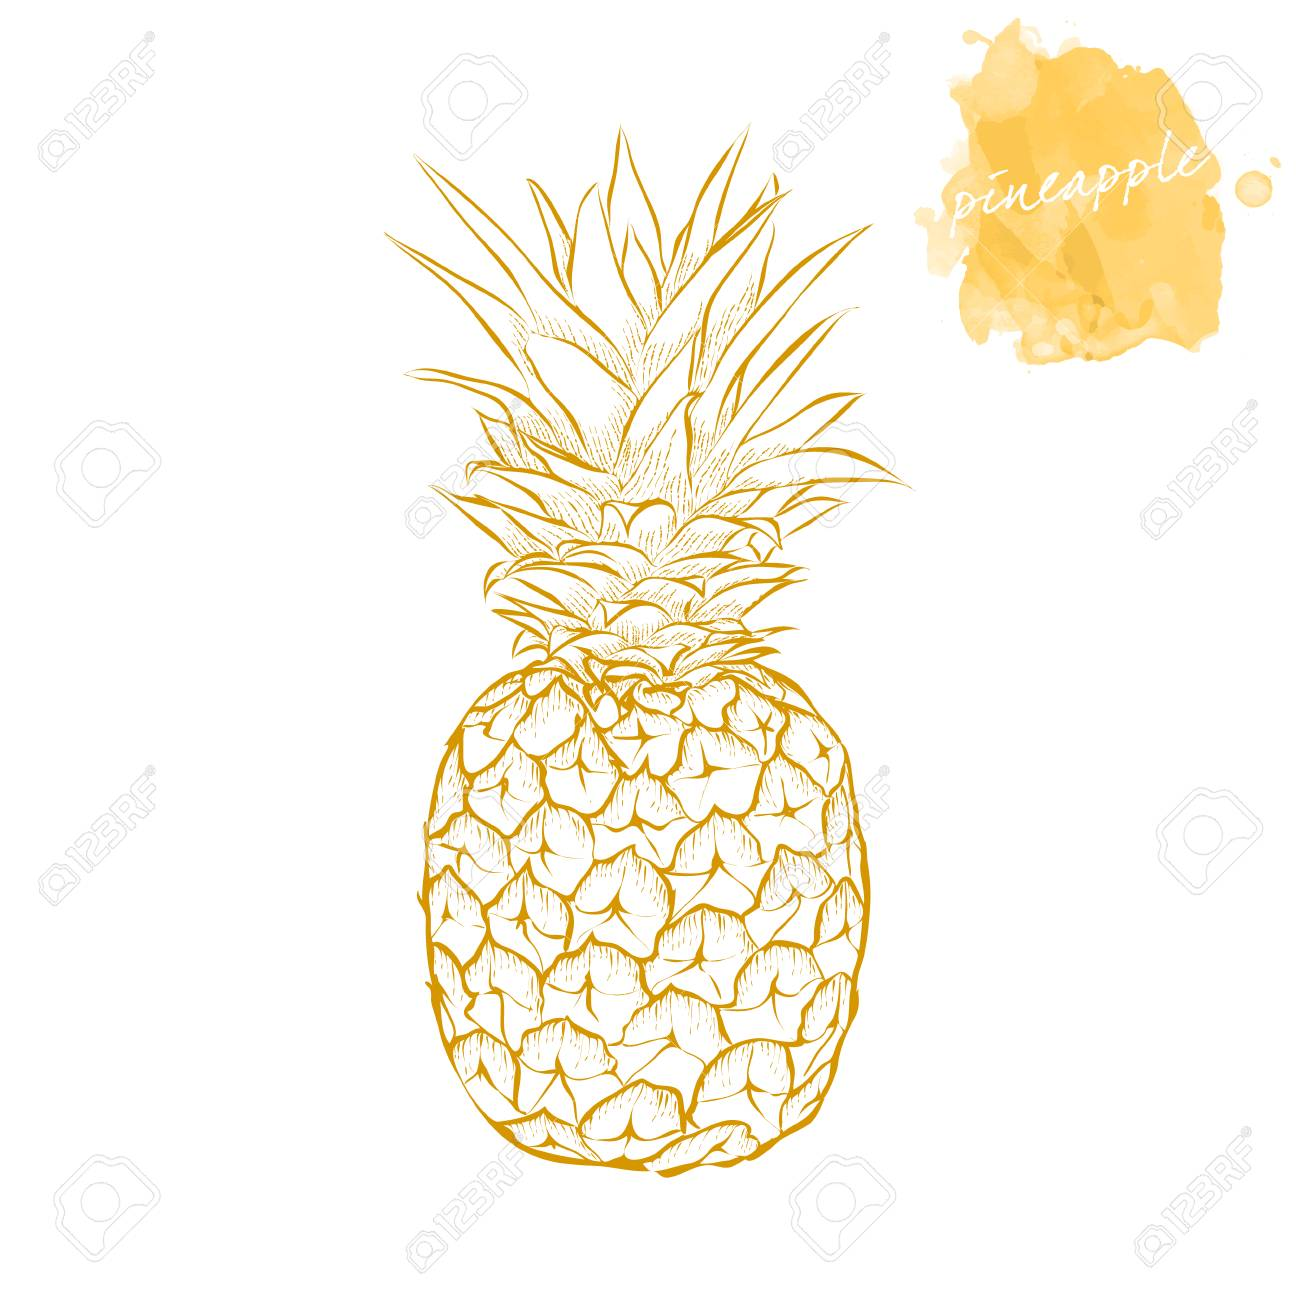 Ripe Pineapple On A White Background Hand Drawn Harvest Sketch